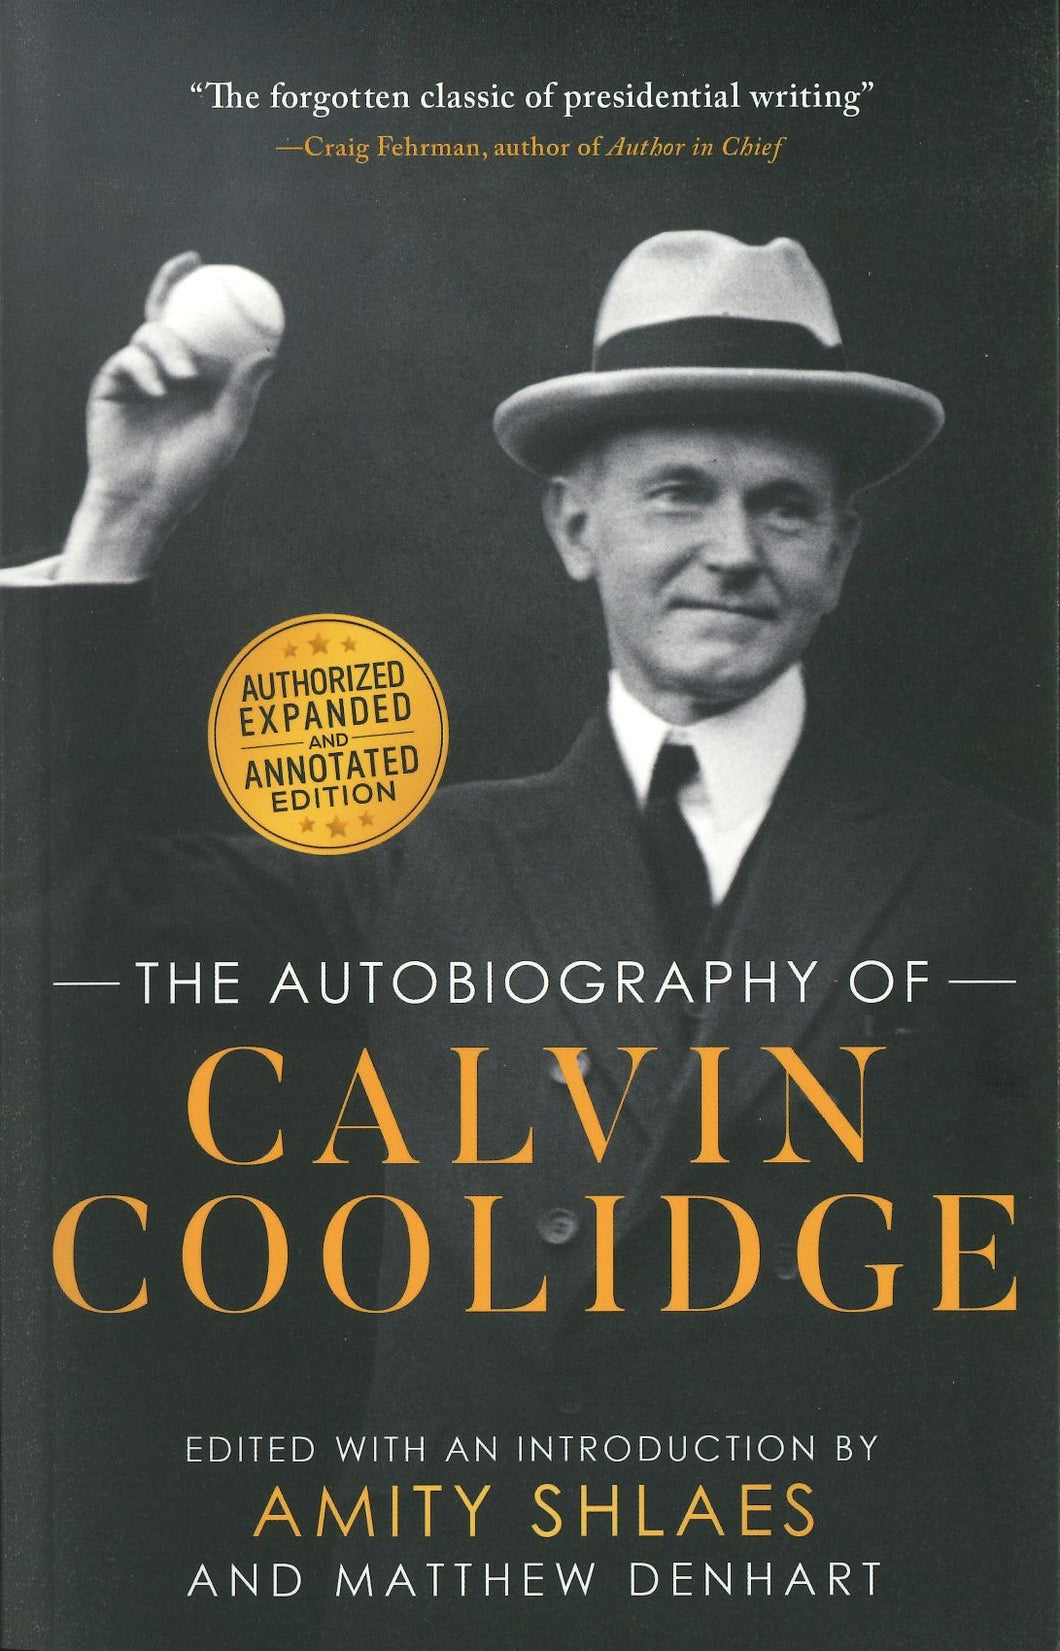 The Autobiography of Calvin Coolidge - Expanded and Annotated Edition